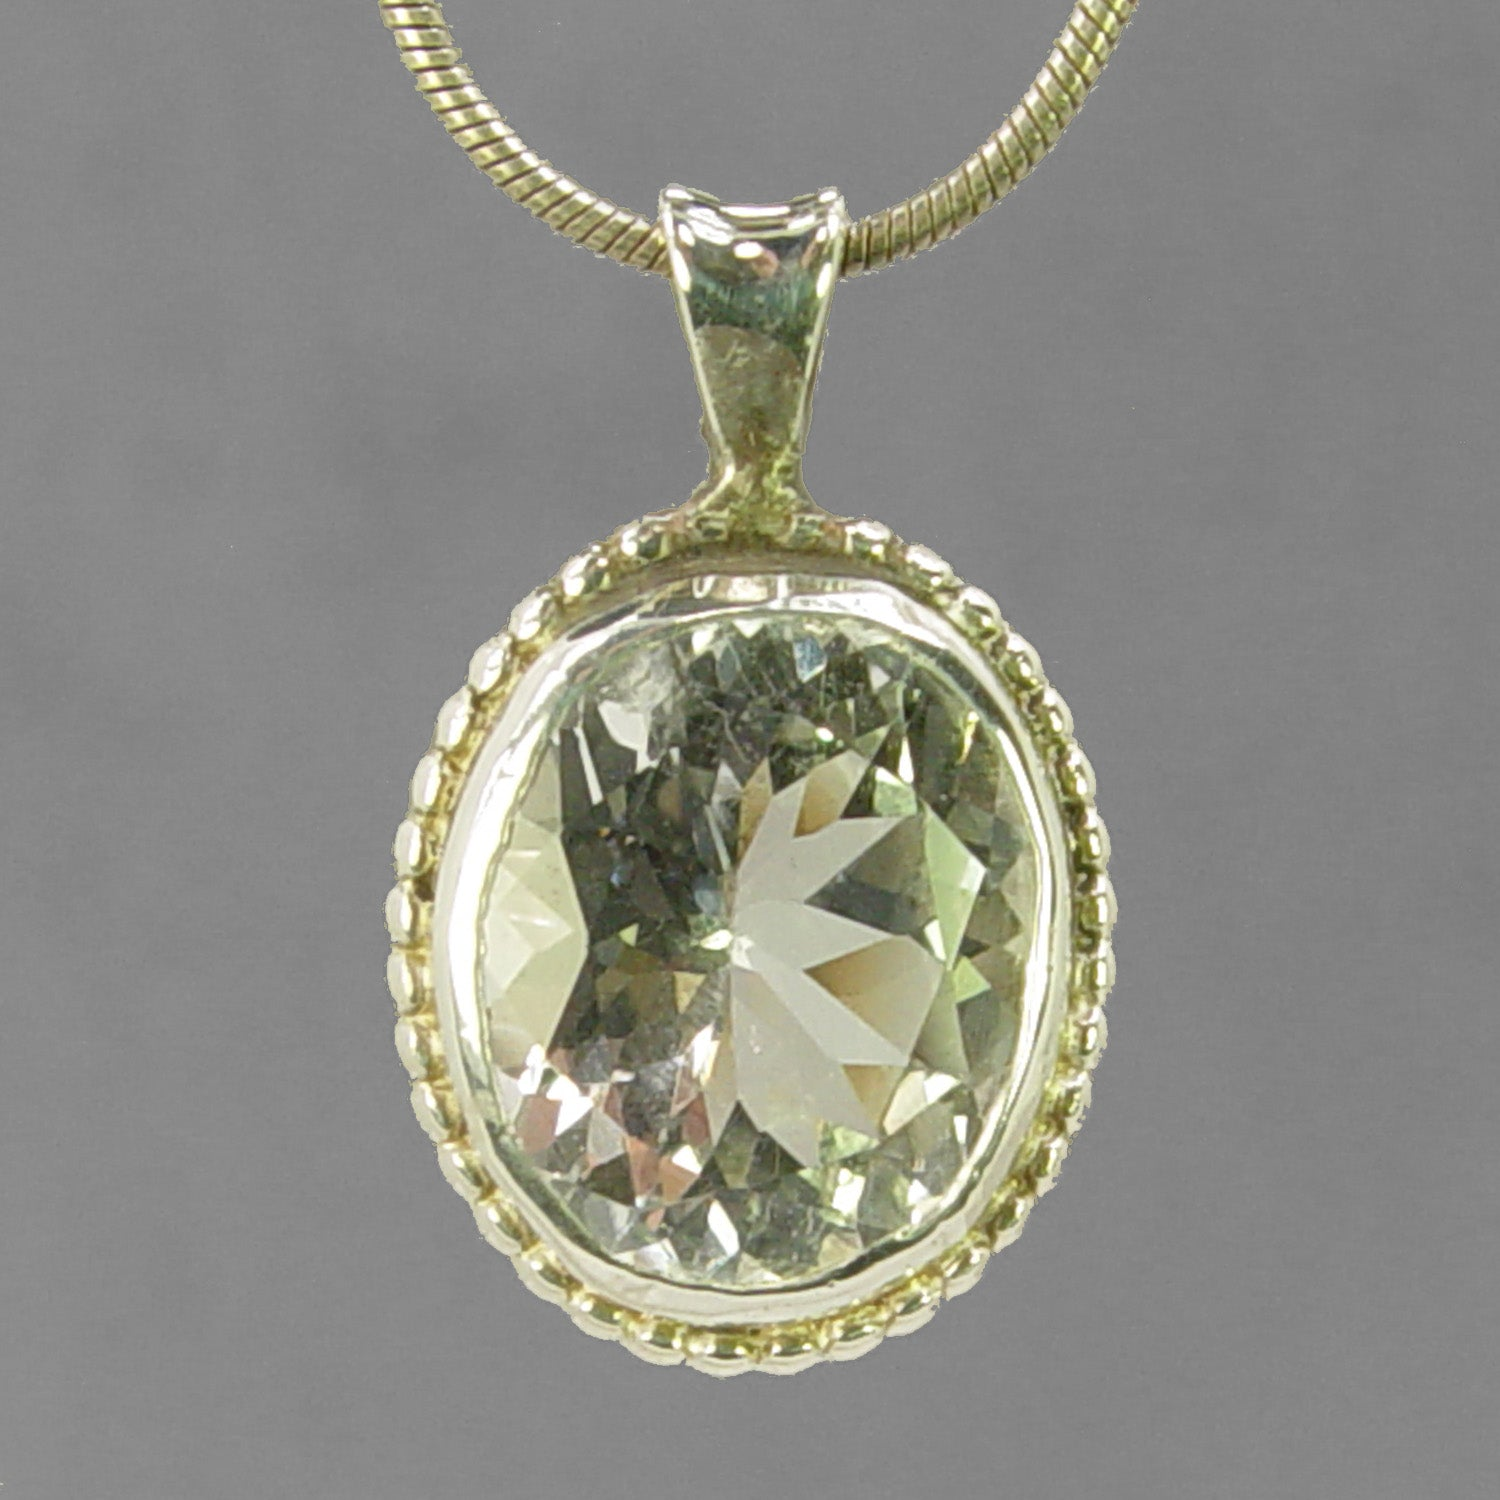 White Topaz 8.15 ct Faceted Oval Fancy Bezel Set Sterling Silver Pendant